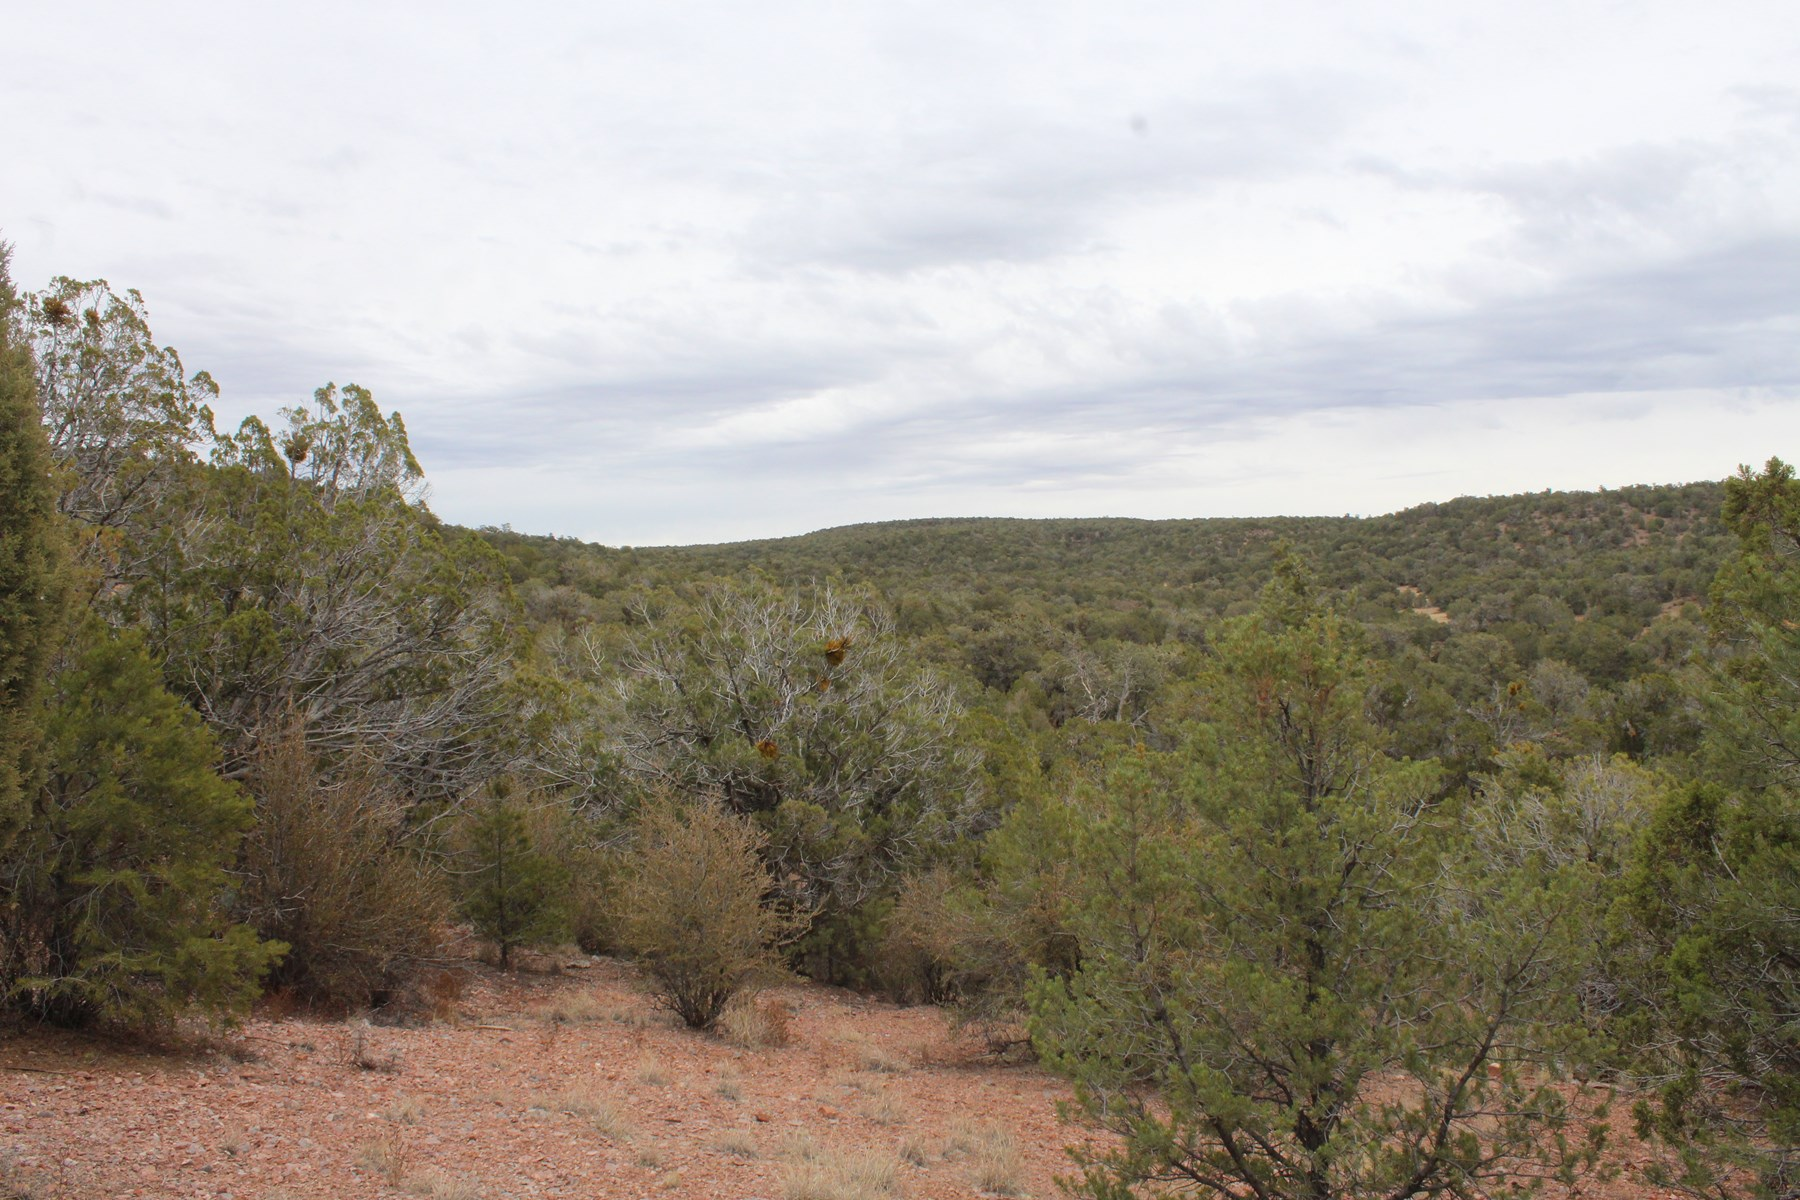 Mountain Camping/Cabin Land for sale Northern AZ No HOA